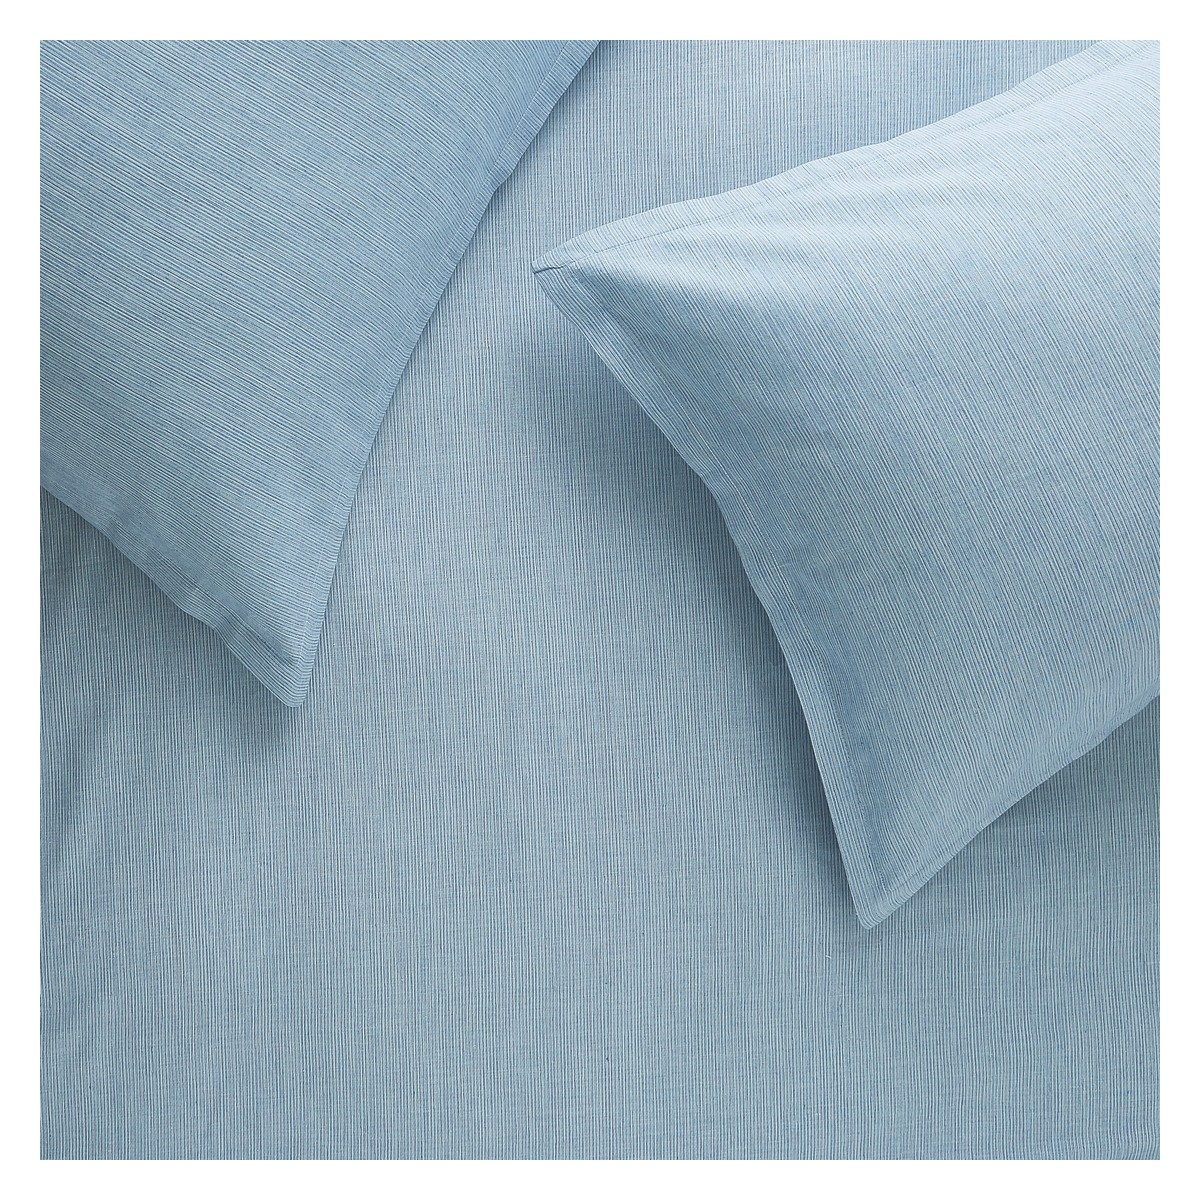 Jcpenney Egyptian Cotton Sheets | Jcpenney Bed | Egyptian Cotton Sheets